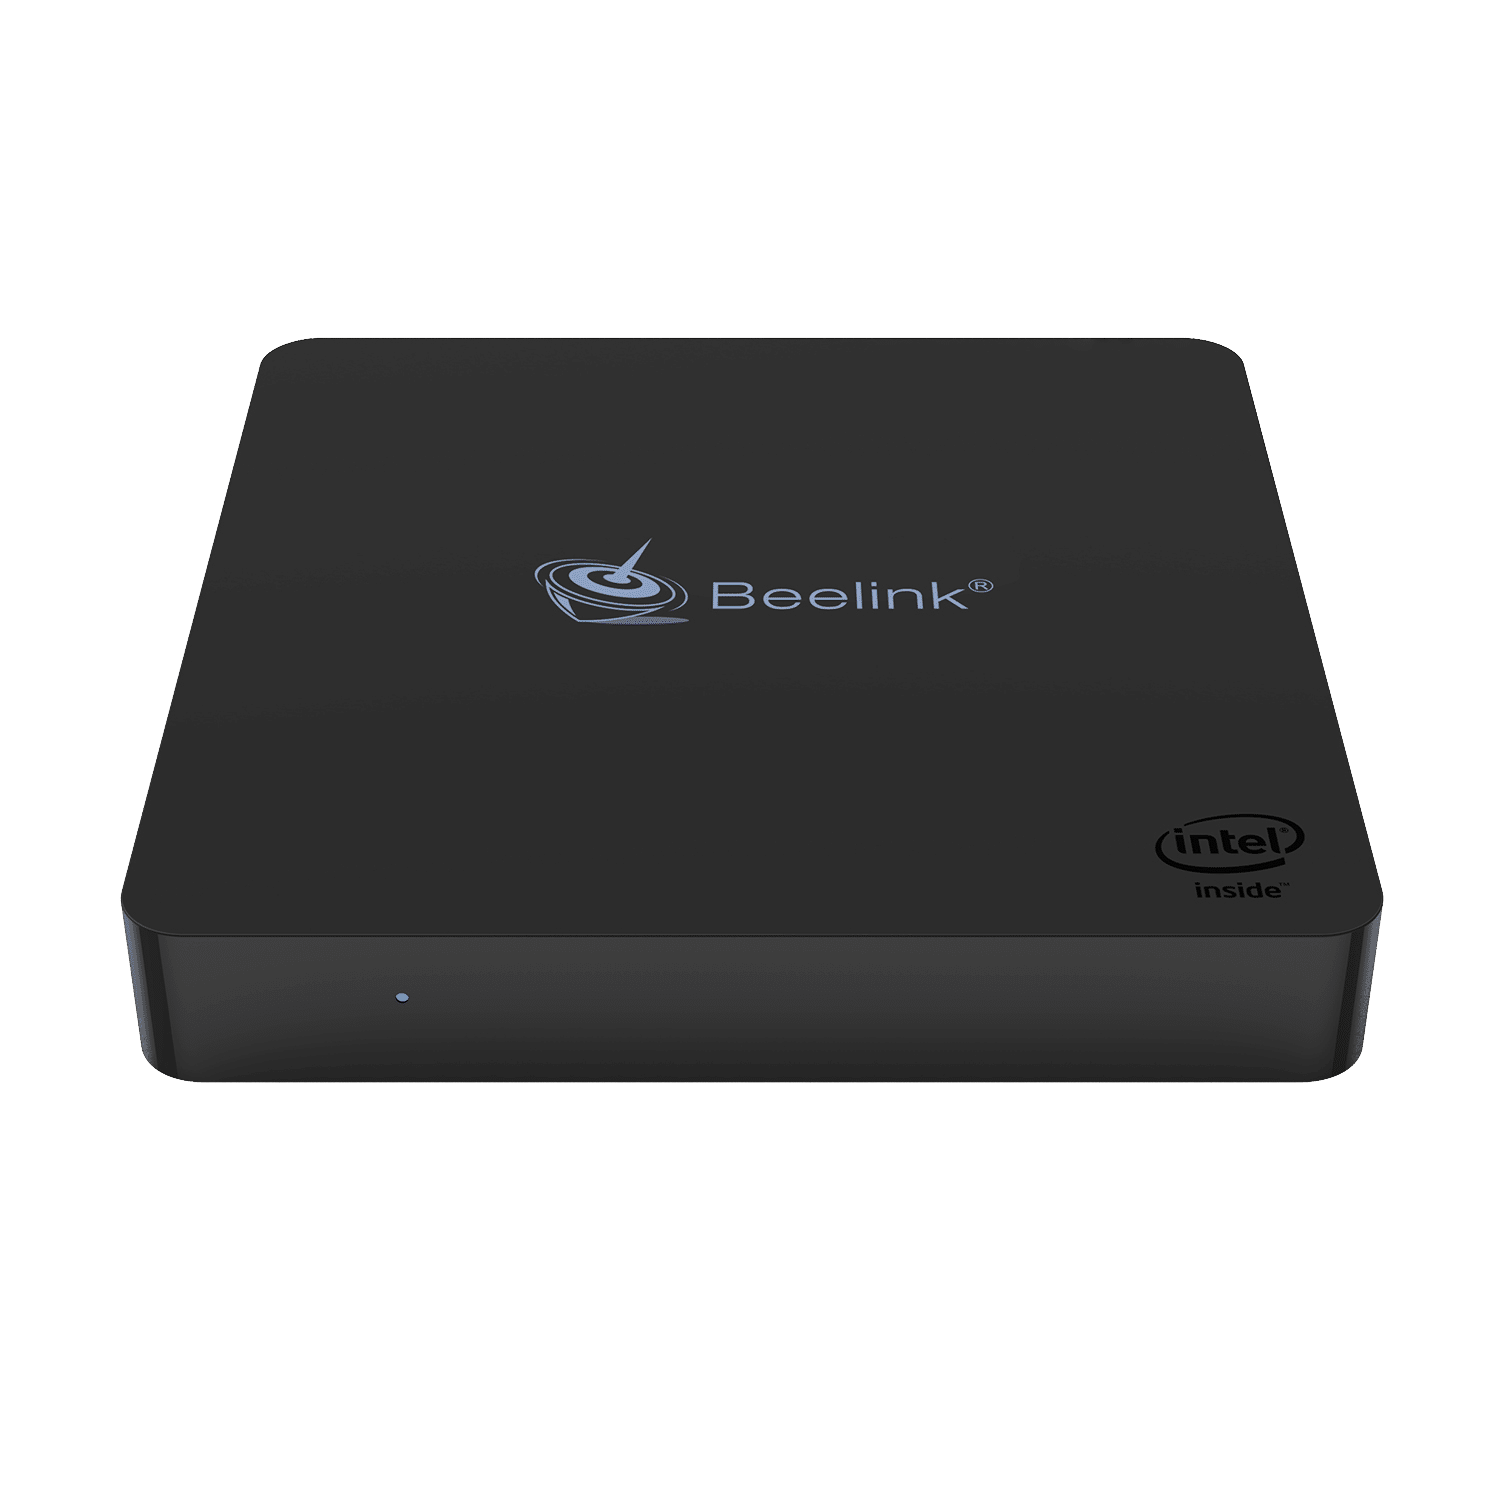 Beelink T34M Windows 10 Mini Computer for Casual browsing or Work